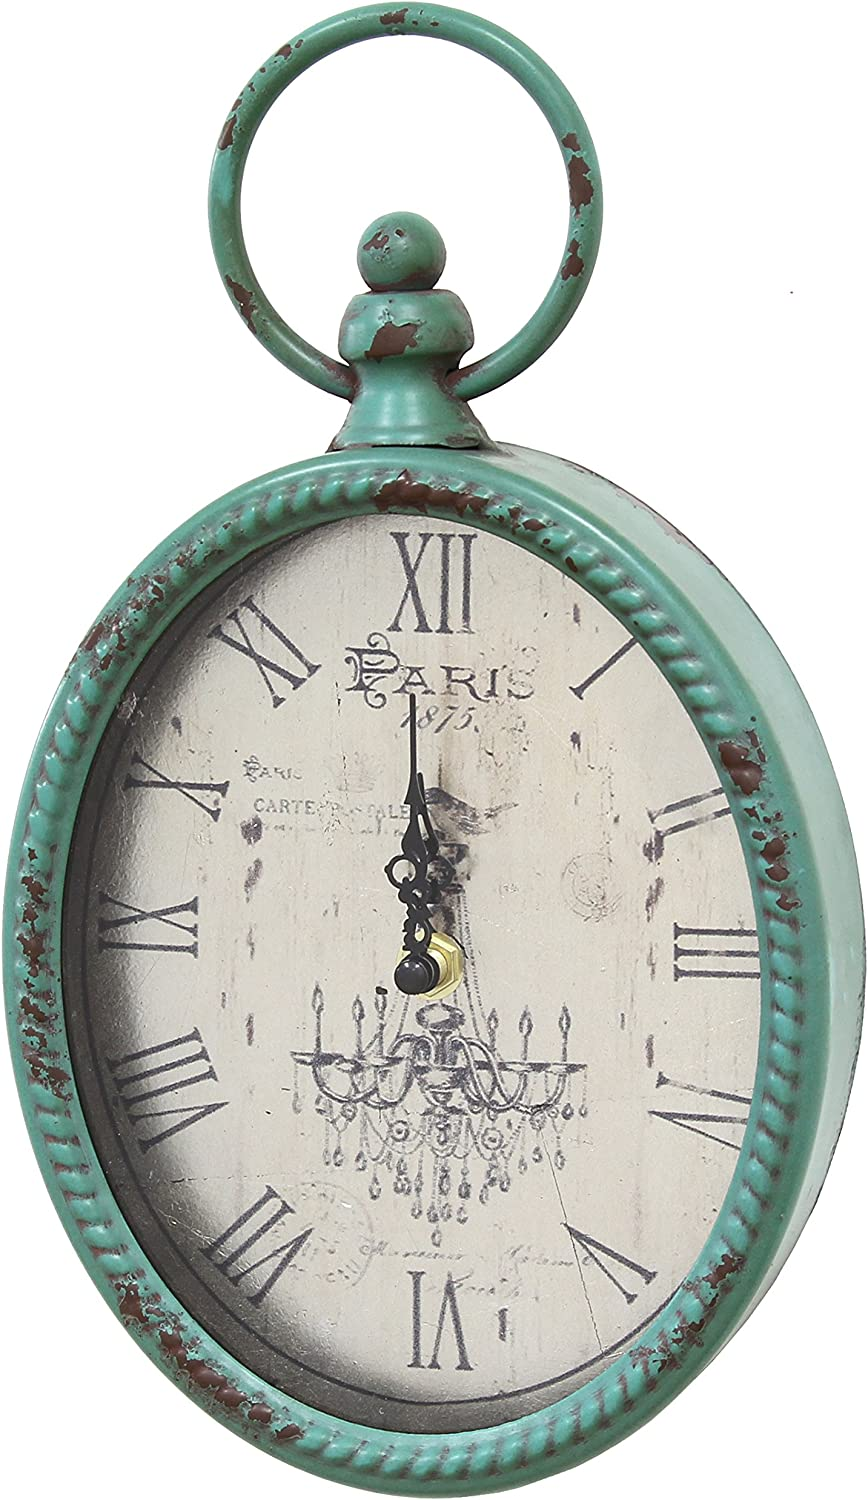 Stratton Home Décor Stratton Home Decor SHD0008 Antique Oval Clock, 6.75 W X 2.00 D X 11.50 H, Teal